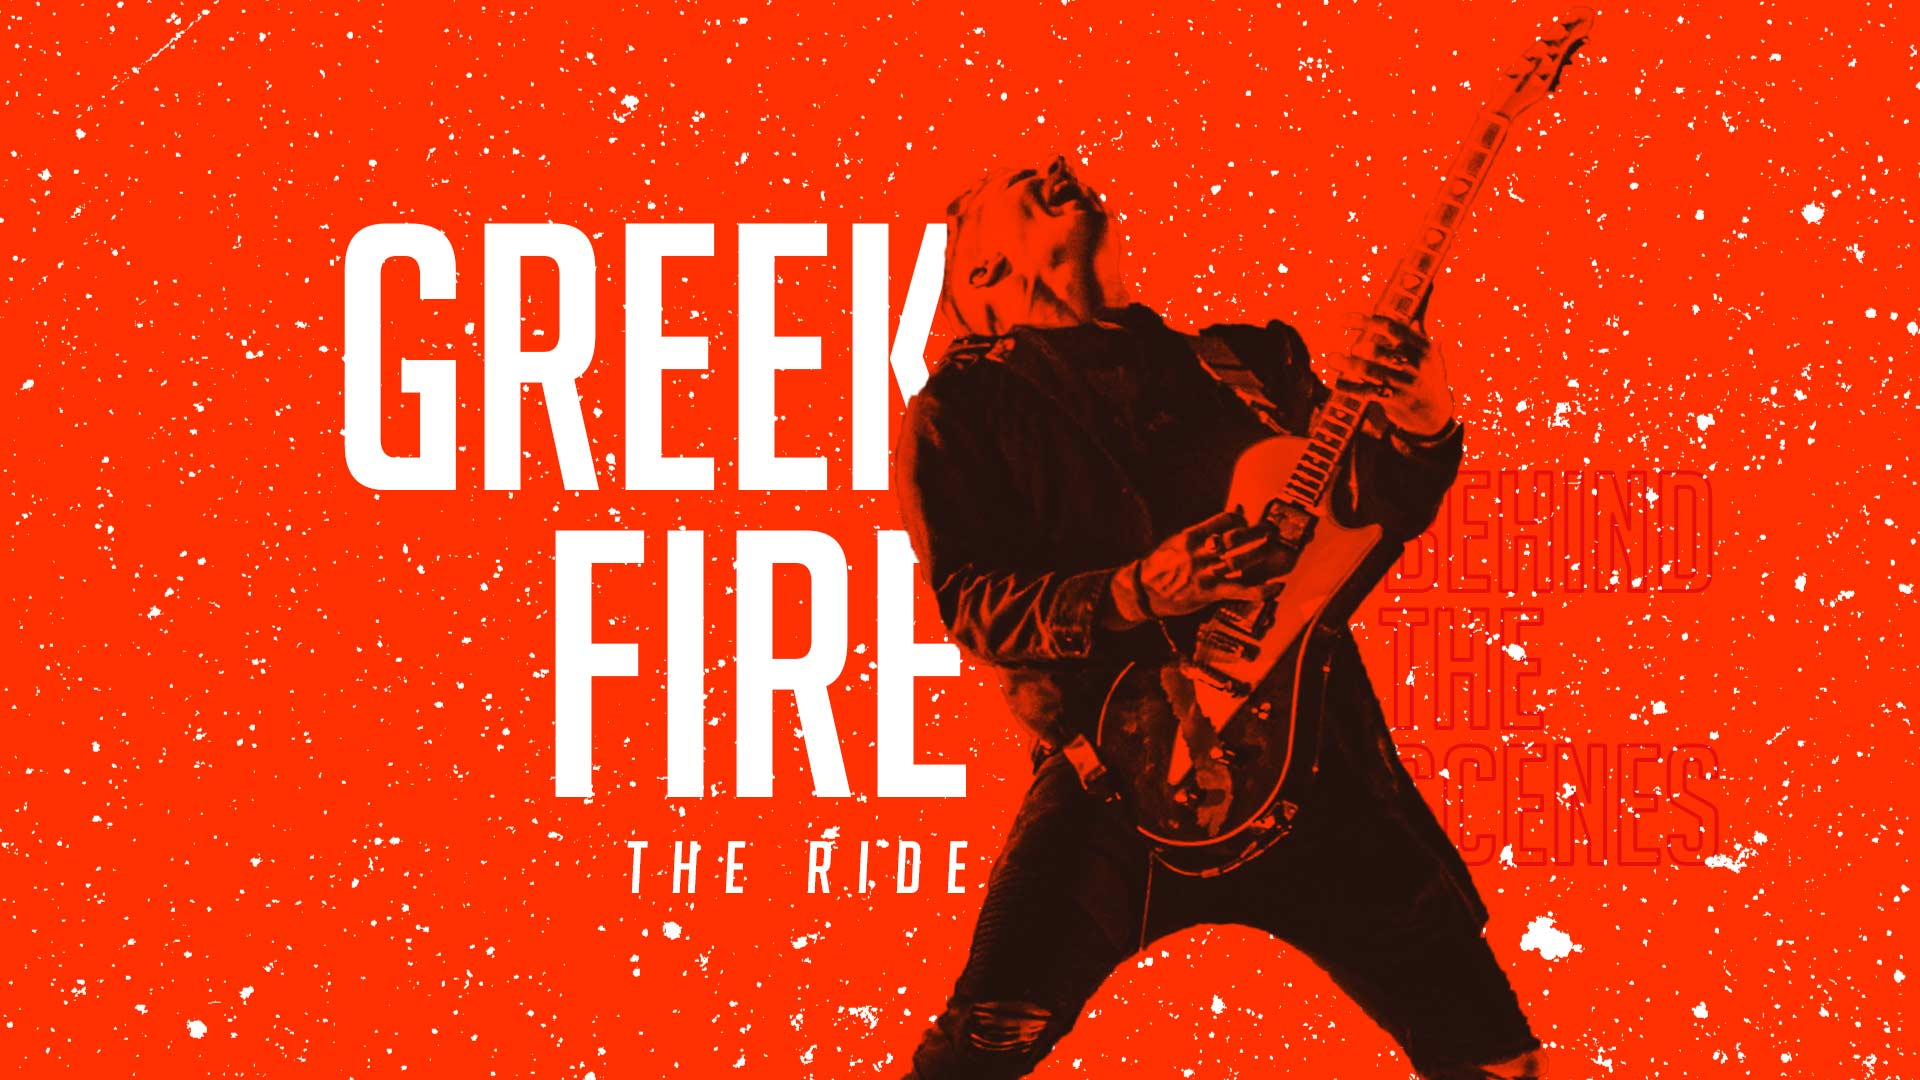 The Ride | Greek Fire